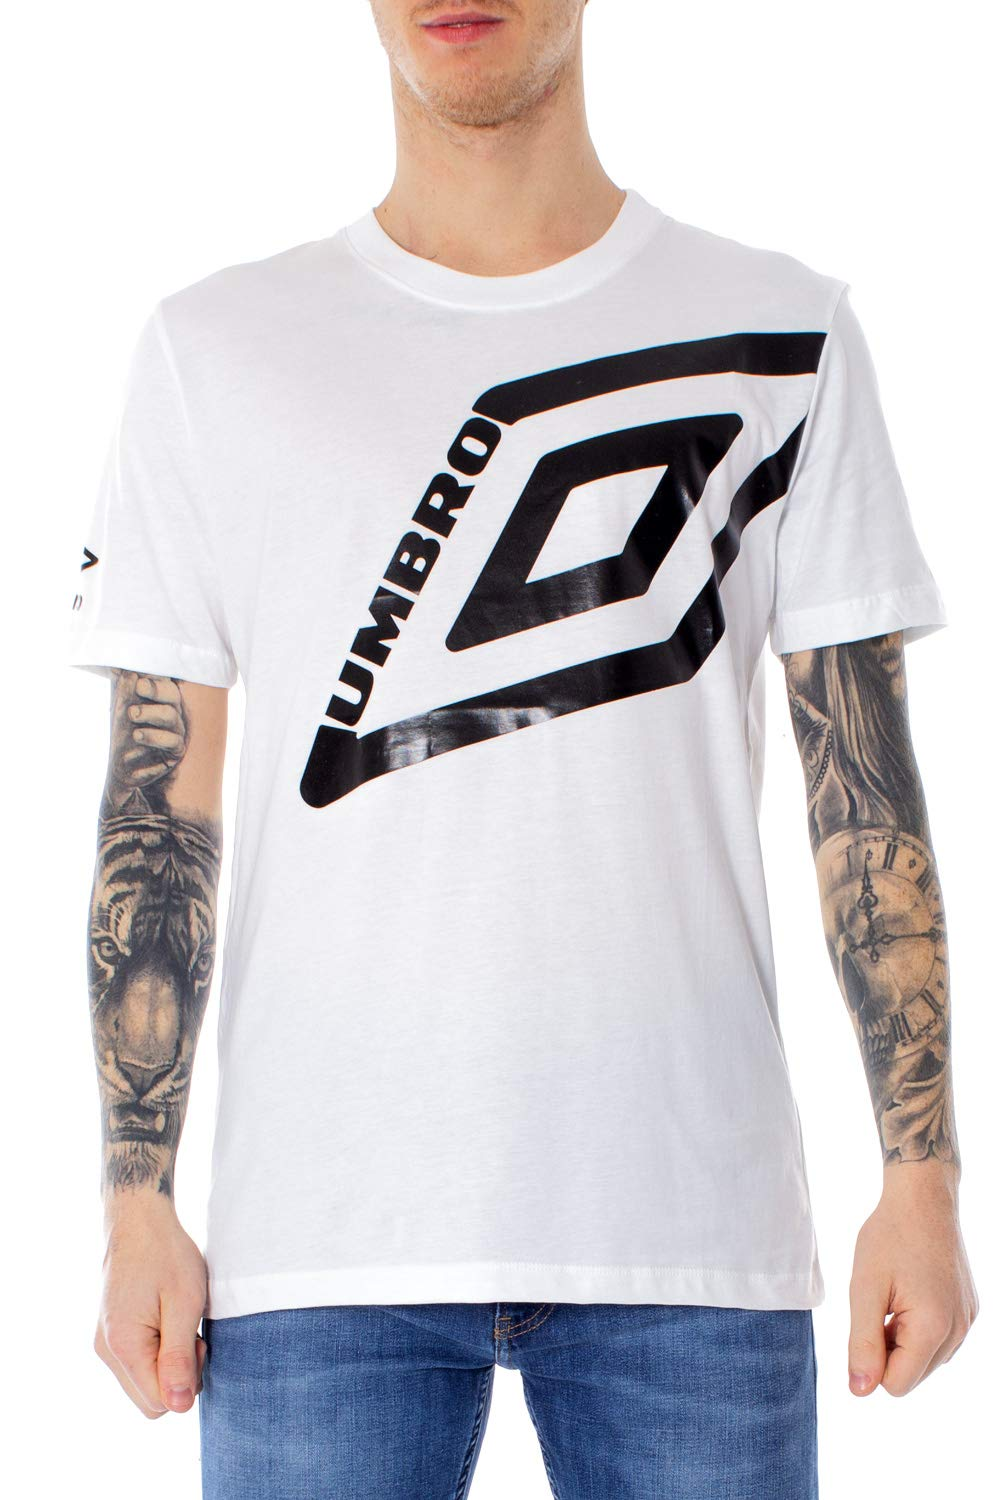 umbro t shirts online